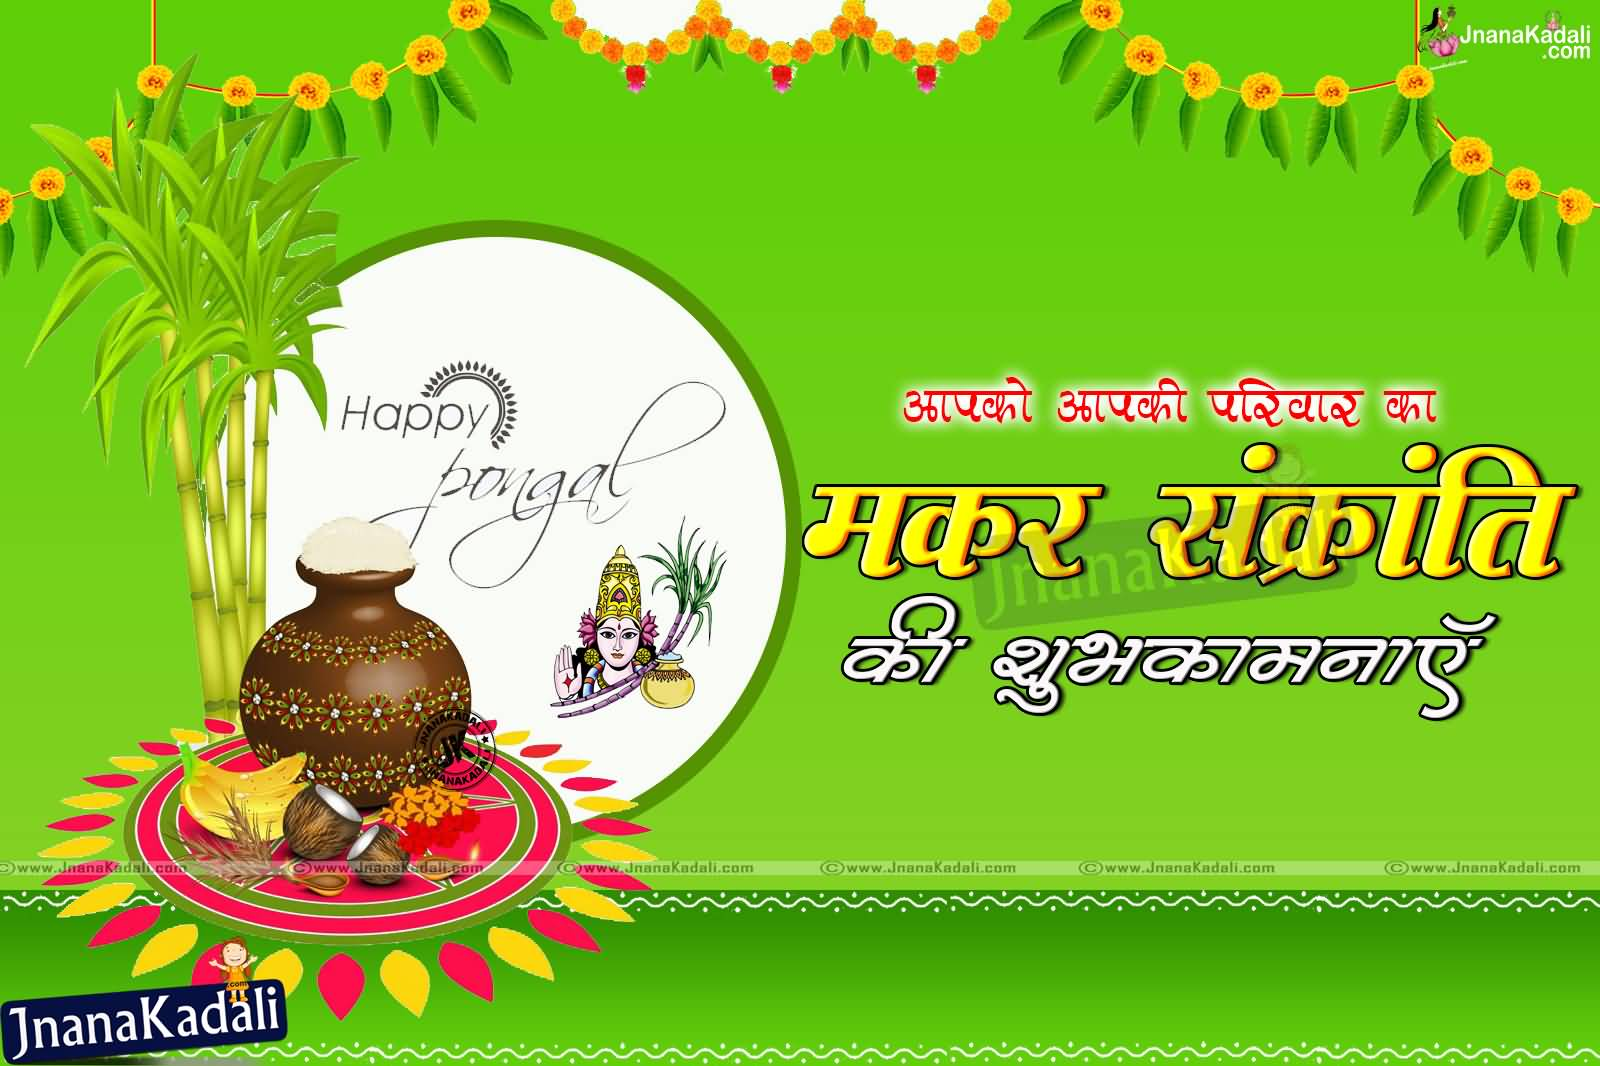 70 Happy Makar Sankranti Wish Pictures And Photos